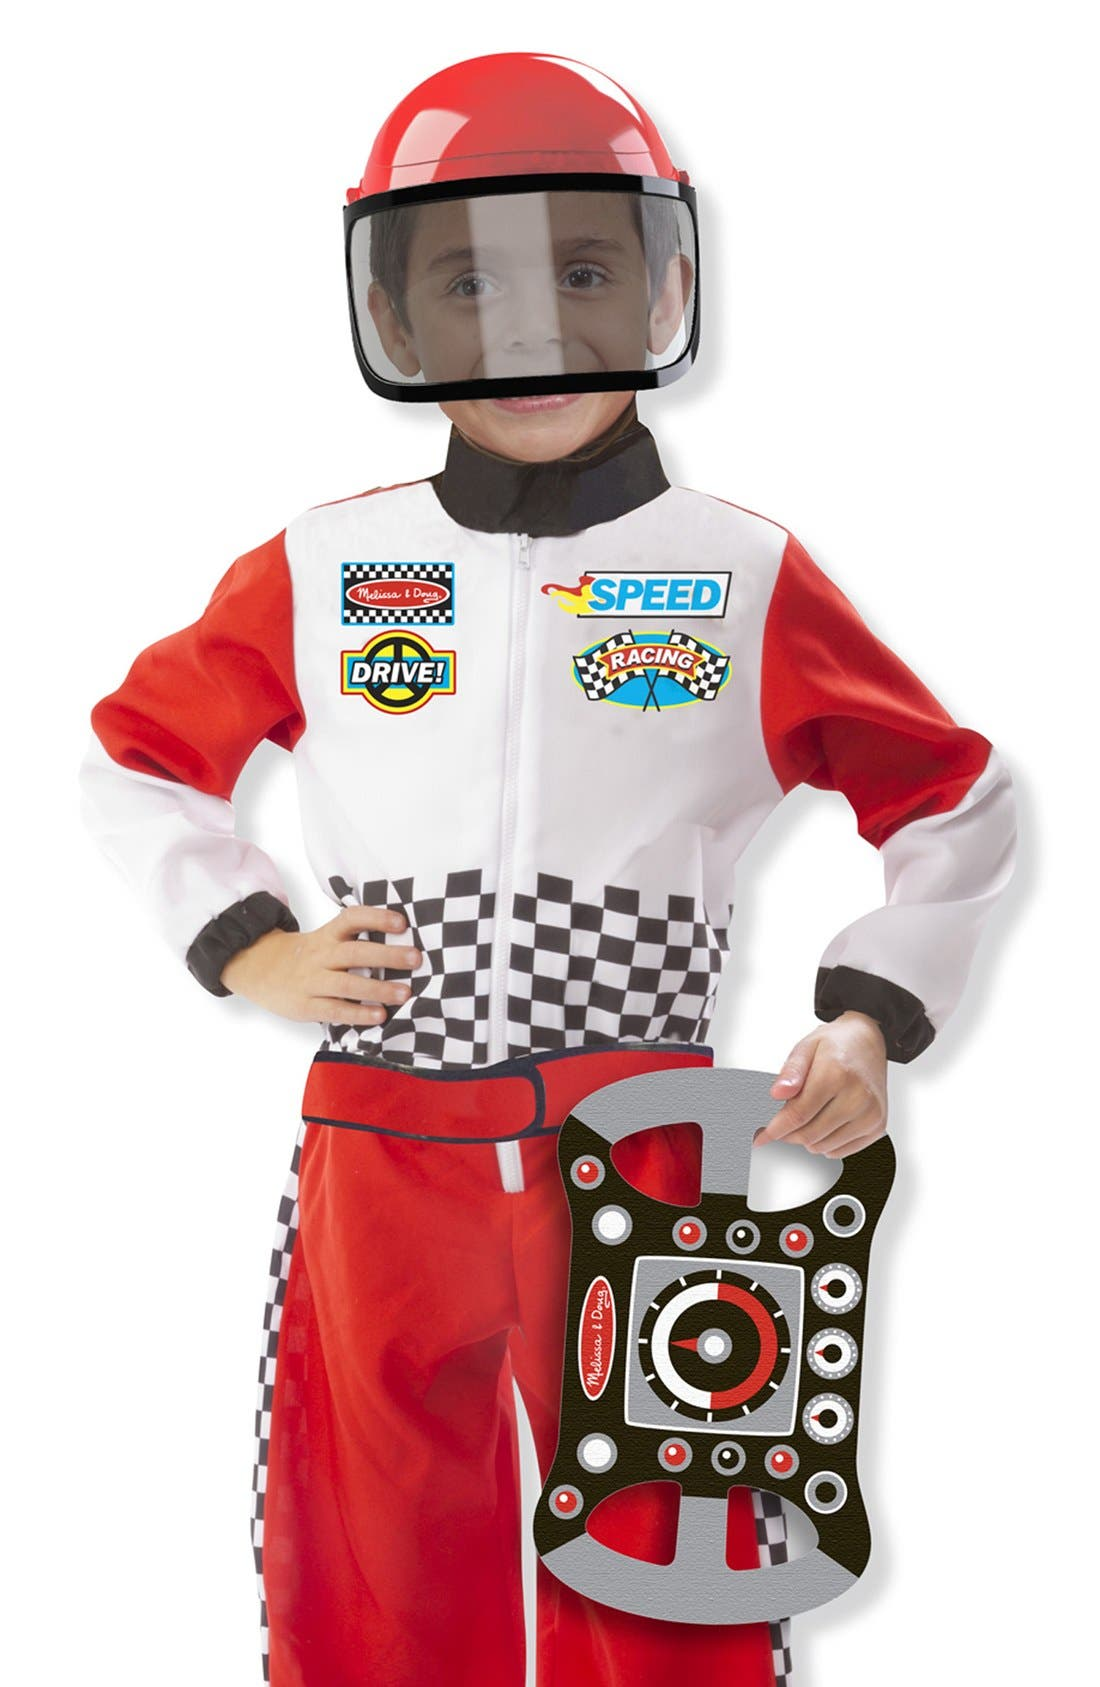 Race Car Driver Role Play Set,                             Main thumbnail 1, color,                             RED